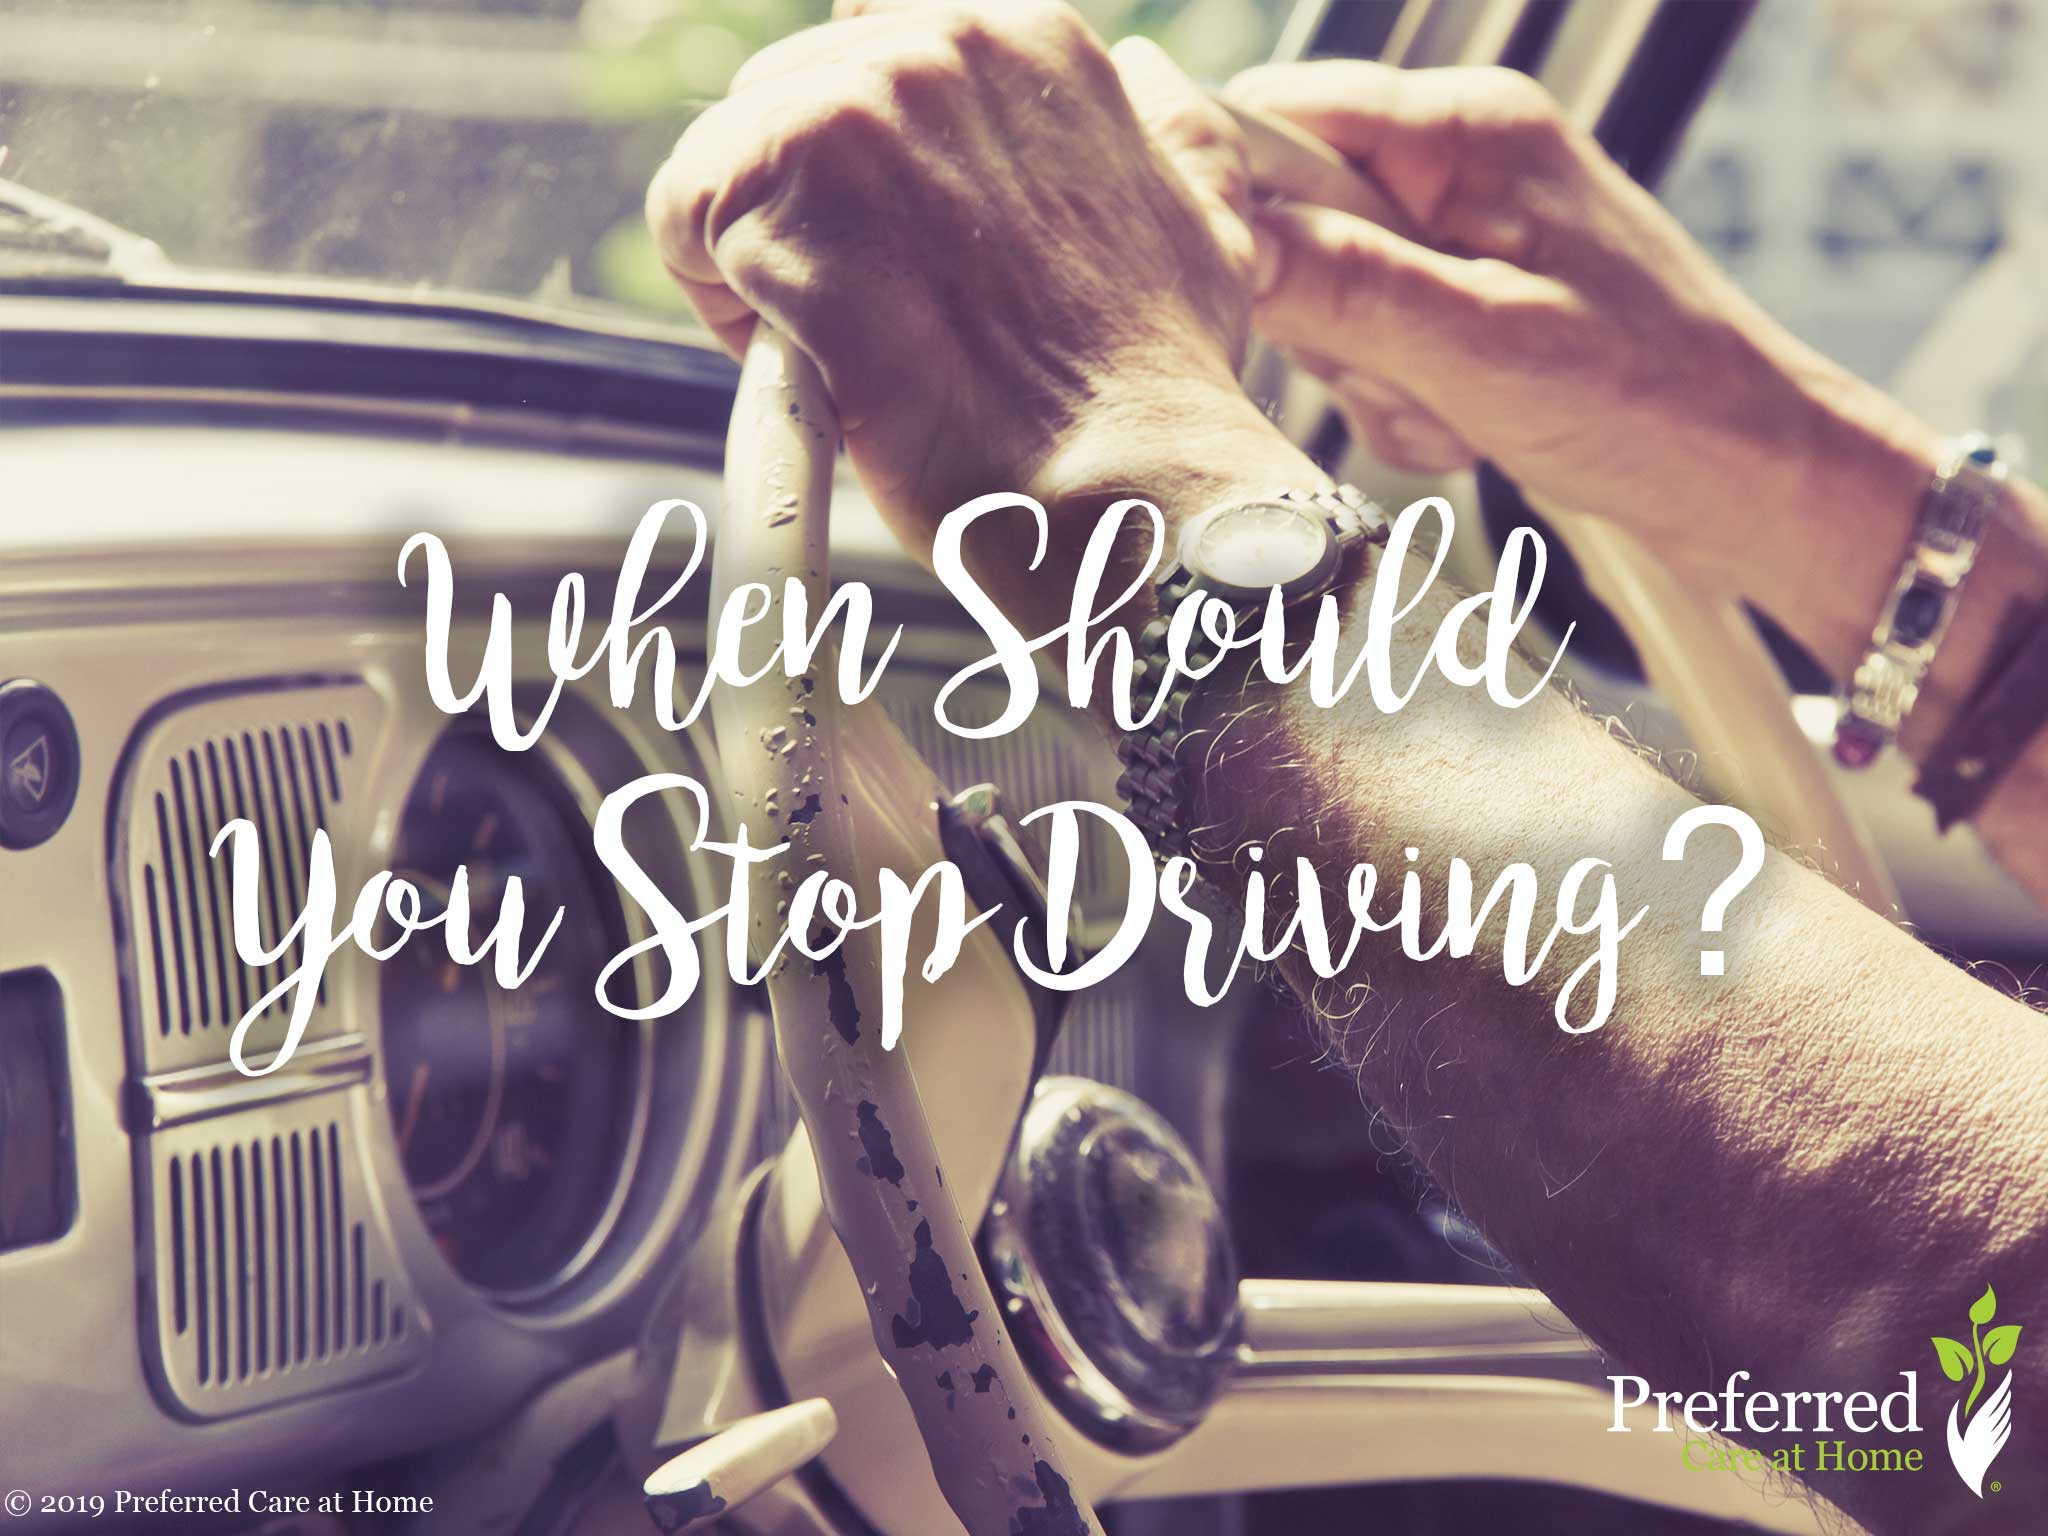 When Should You Stop Driving?